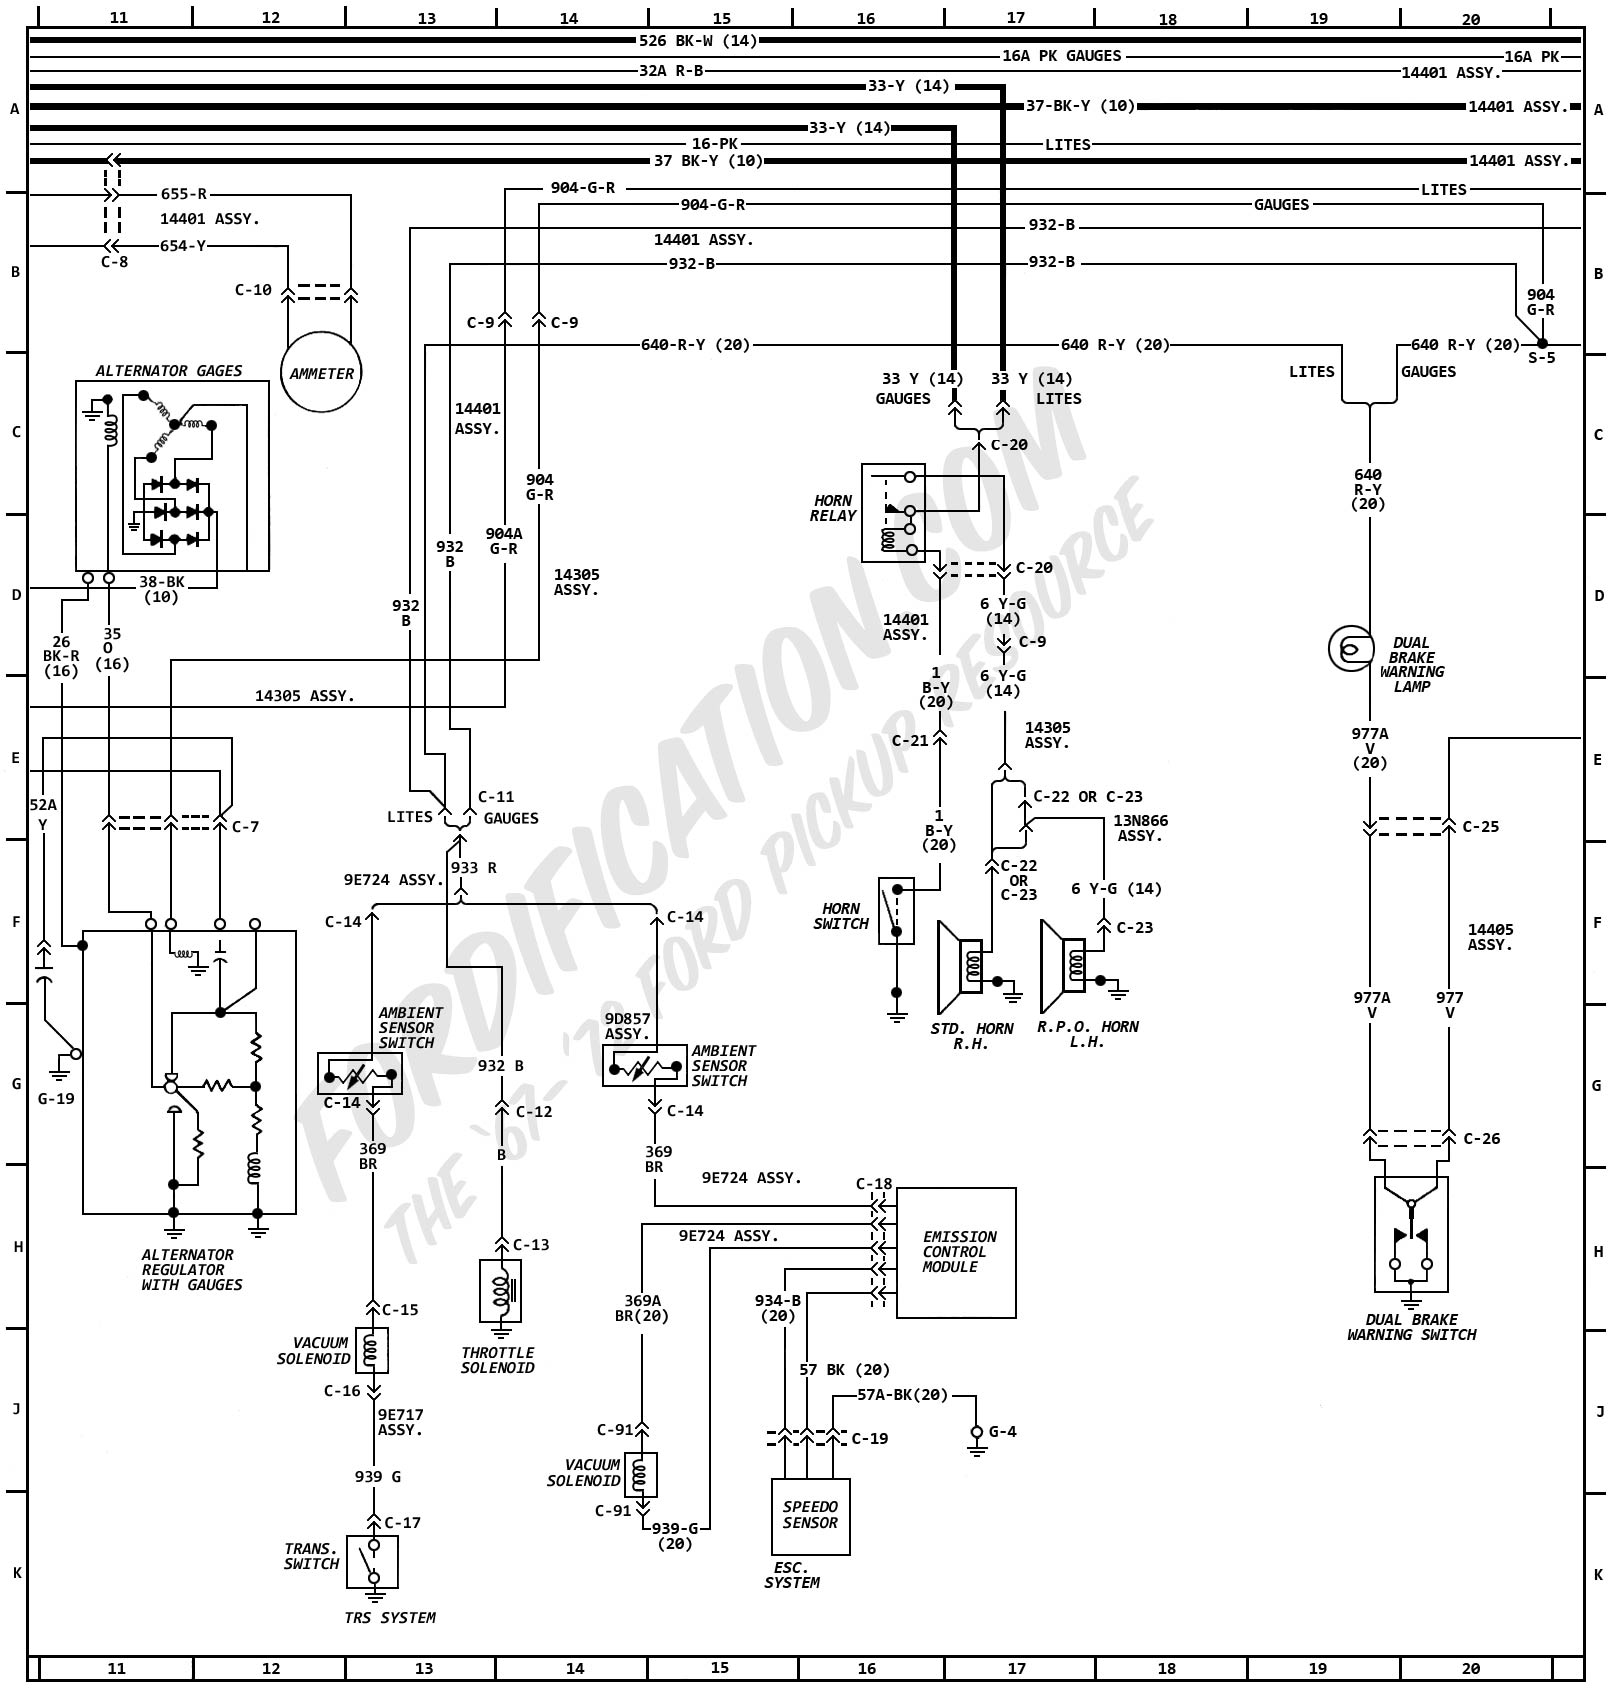 [DIAGRAM] 1966 Ford F100 Wire Diagram FULL Version HD